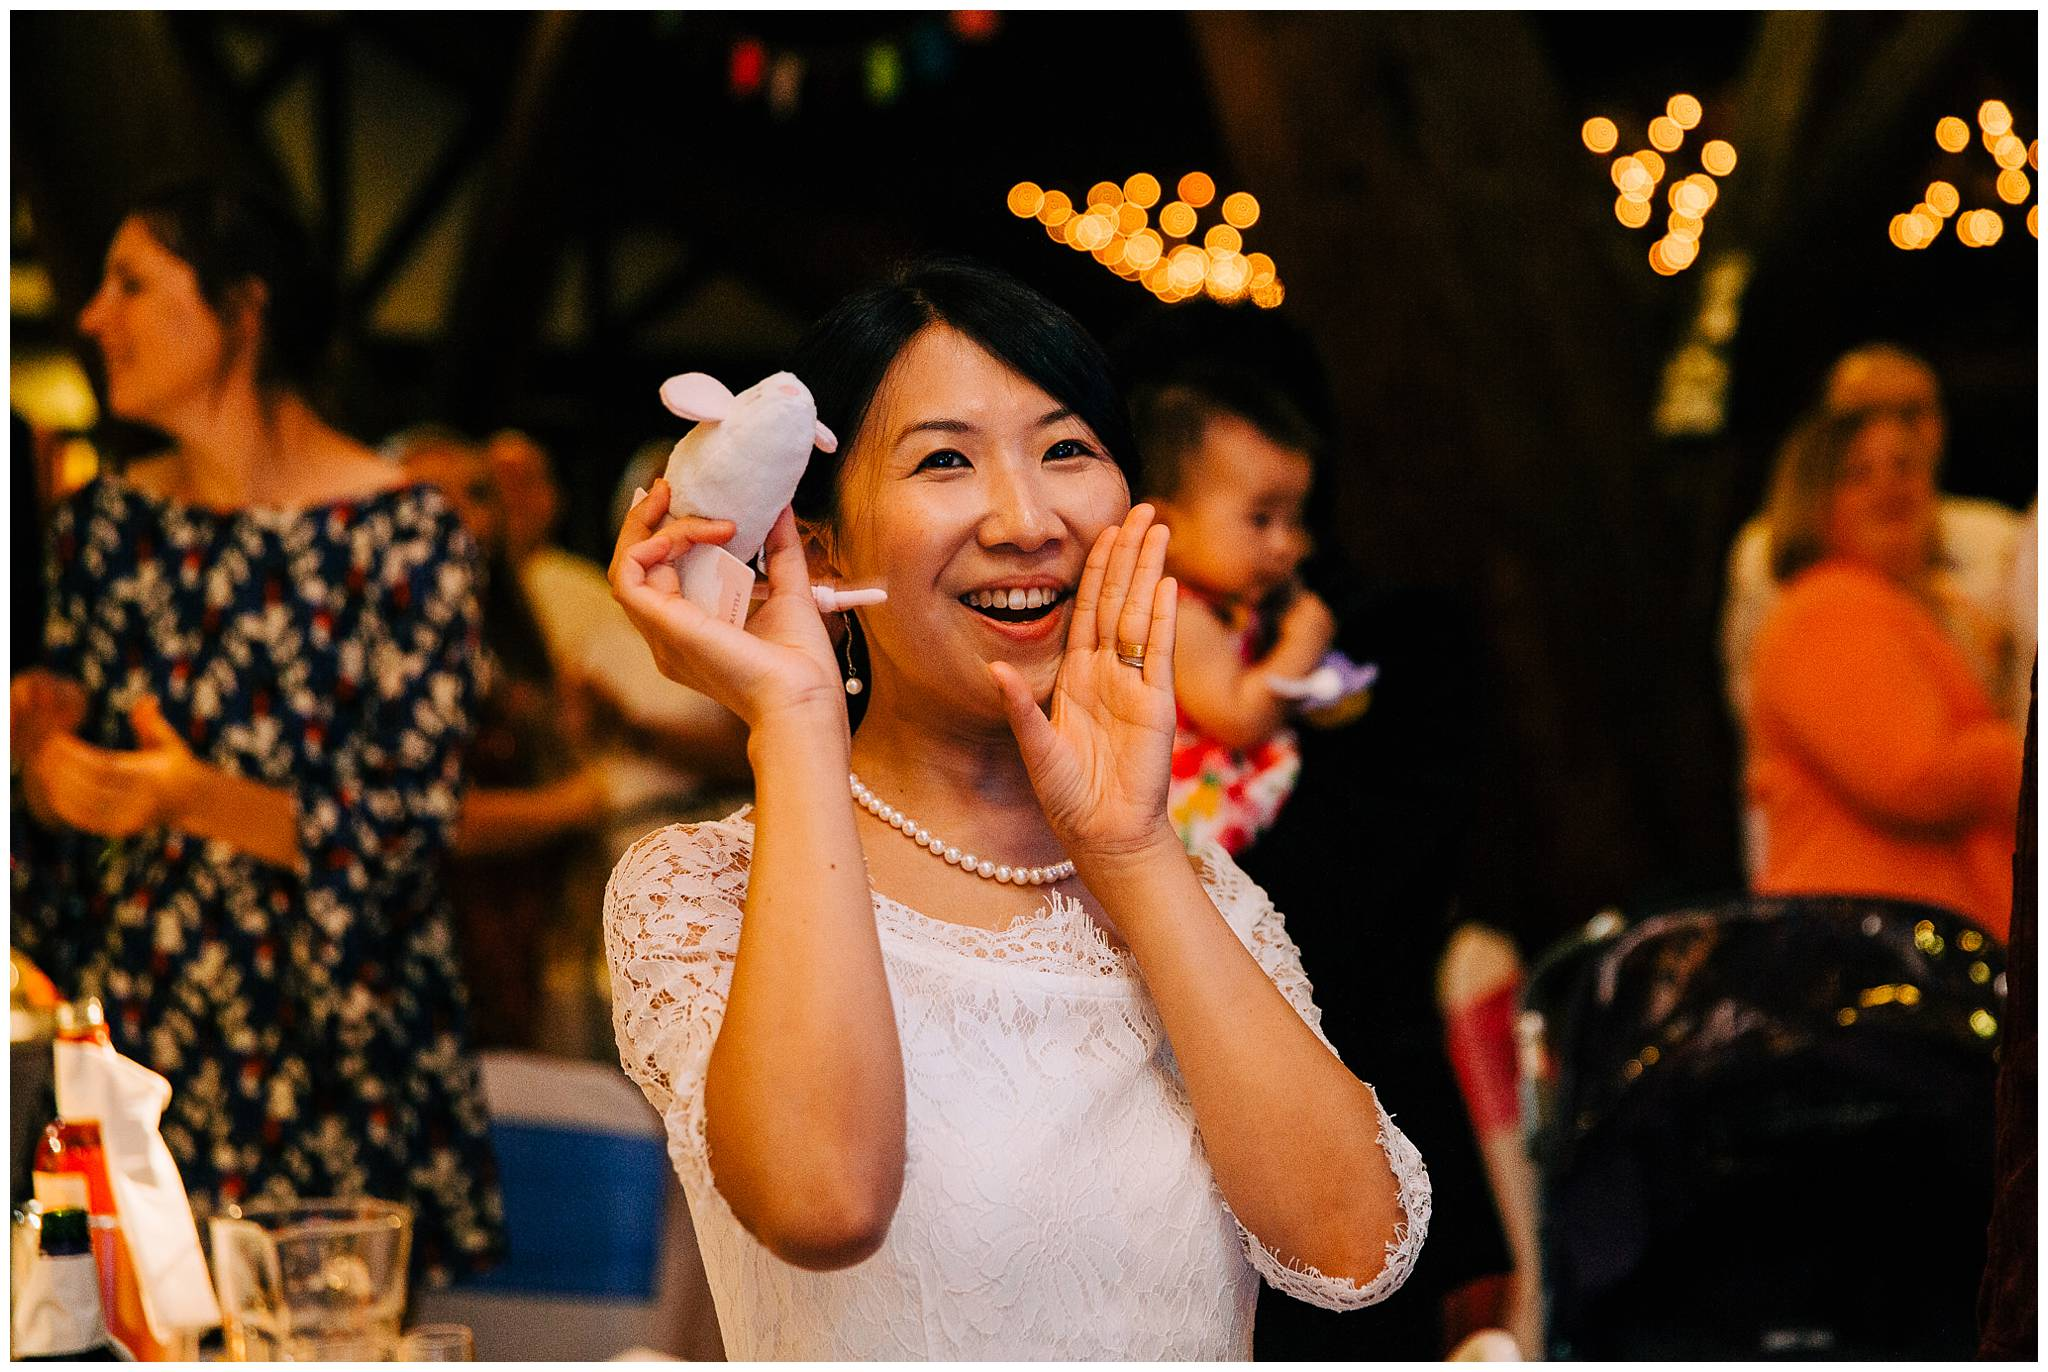 woman cheering holing a stuff toy mouse